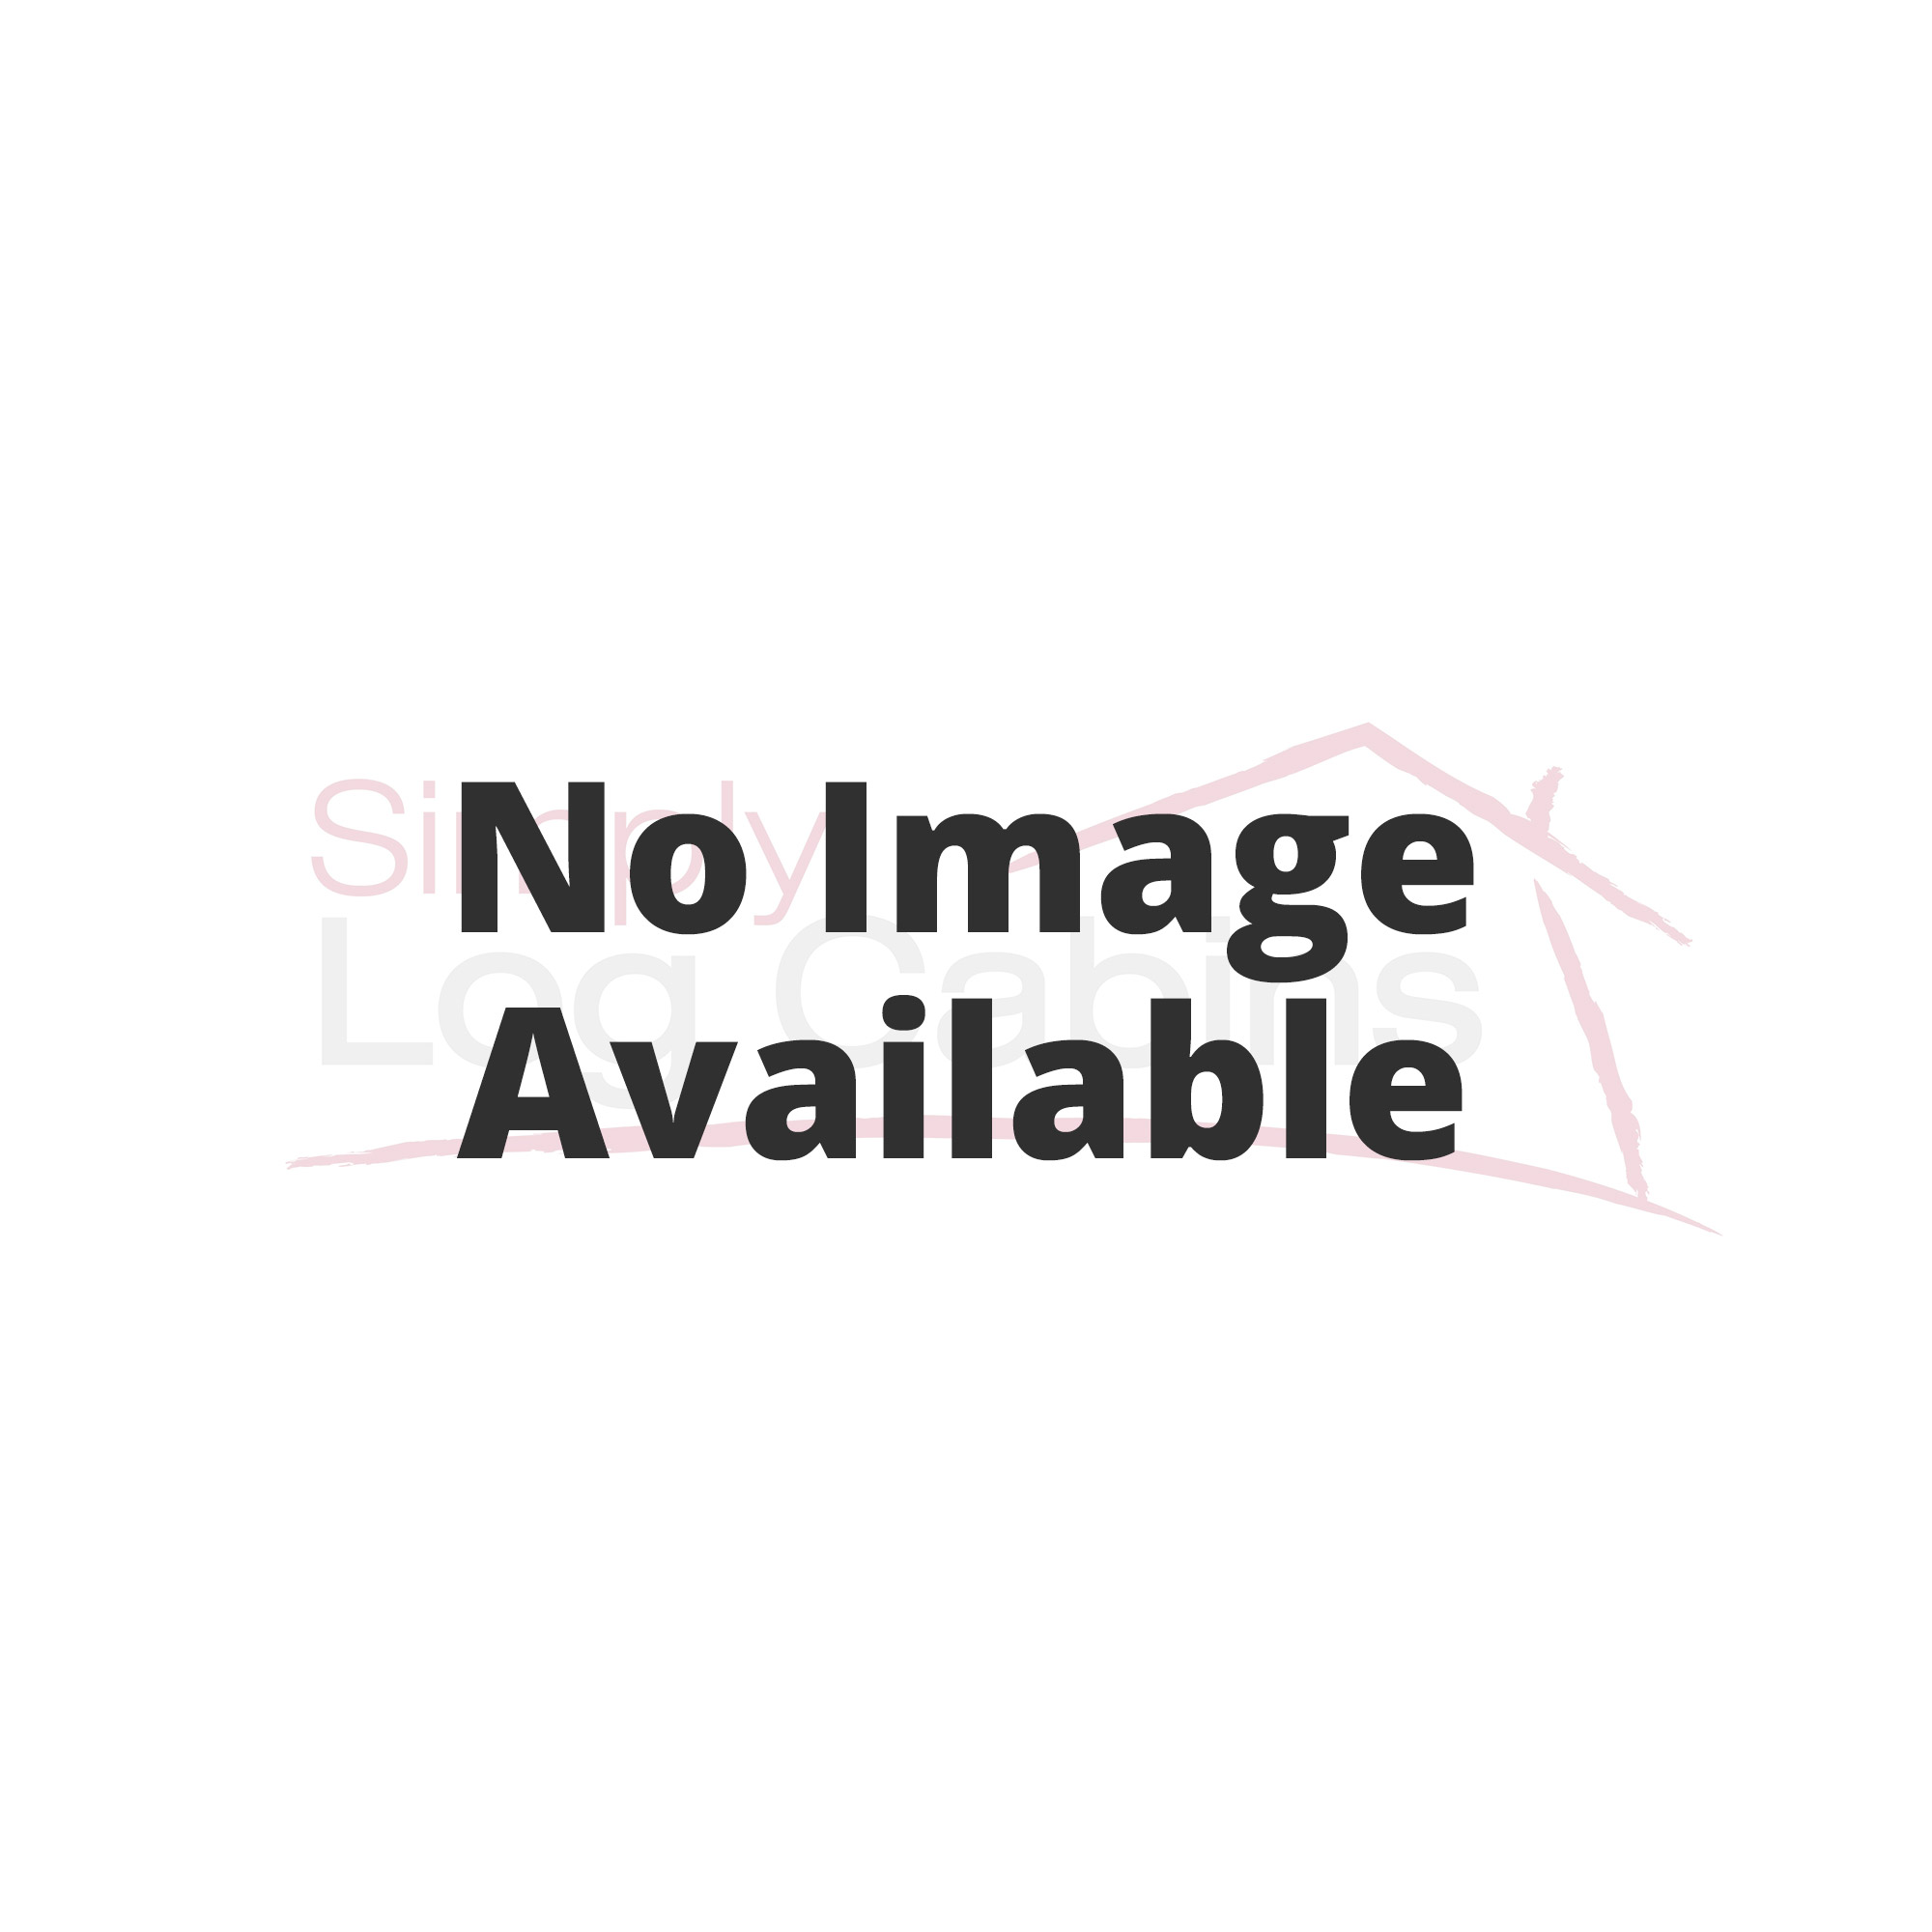 Rowlinson Chatsworth Summer House P266 in addition Cedar Fence Calculator likewise Aluminum Solid Patio Covers together with Cheap Carports Melbourne likewise Garages. on easy to build carports